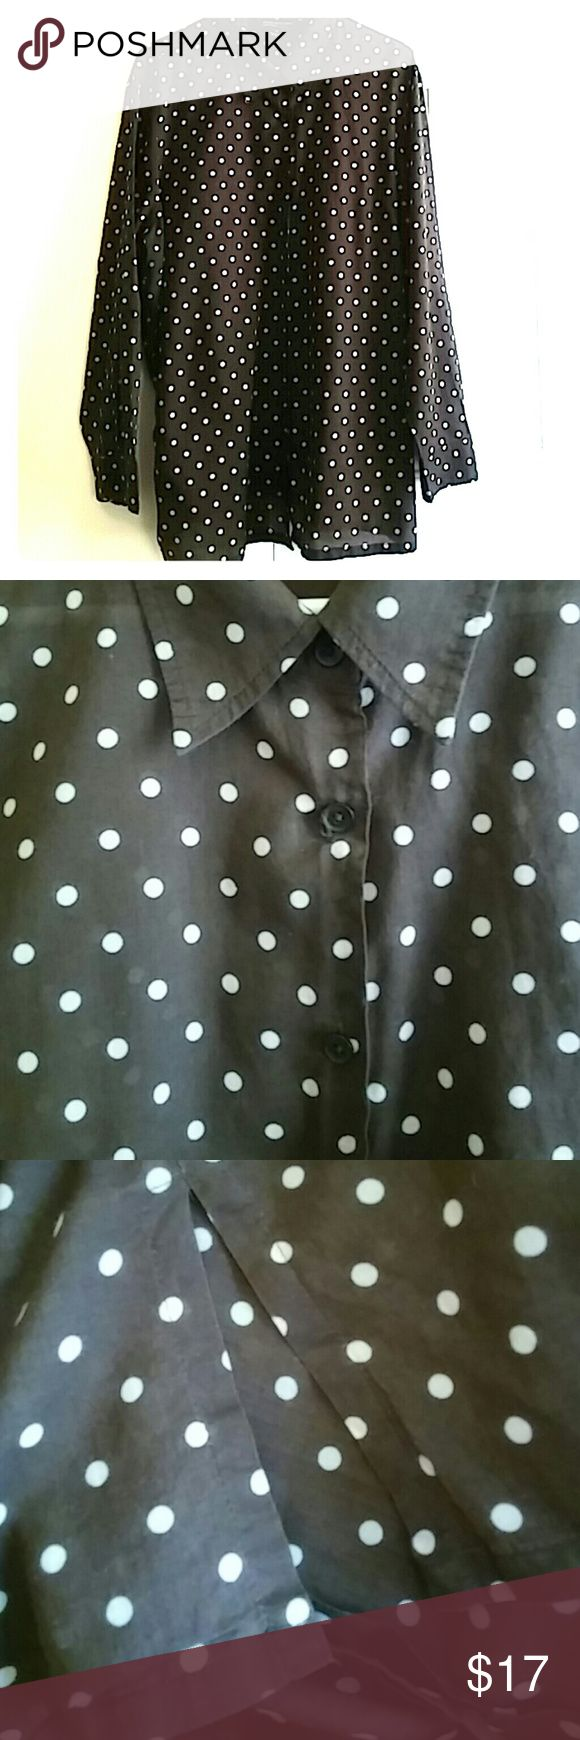 Jones New York Signature Woman Top Jones New York Signature Woman Top. Brown & White Polka dot Button Down with Side Slits. Sleeves can be fold to 3/4 length and fastened with Button Closures. 100% Cotton. Jones New York Signature Woman Tops Button Down Shirts